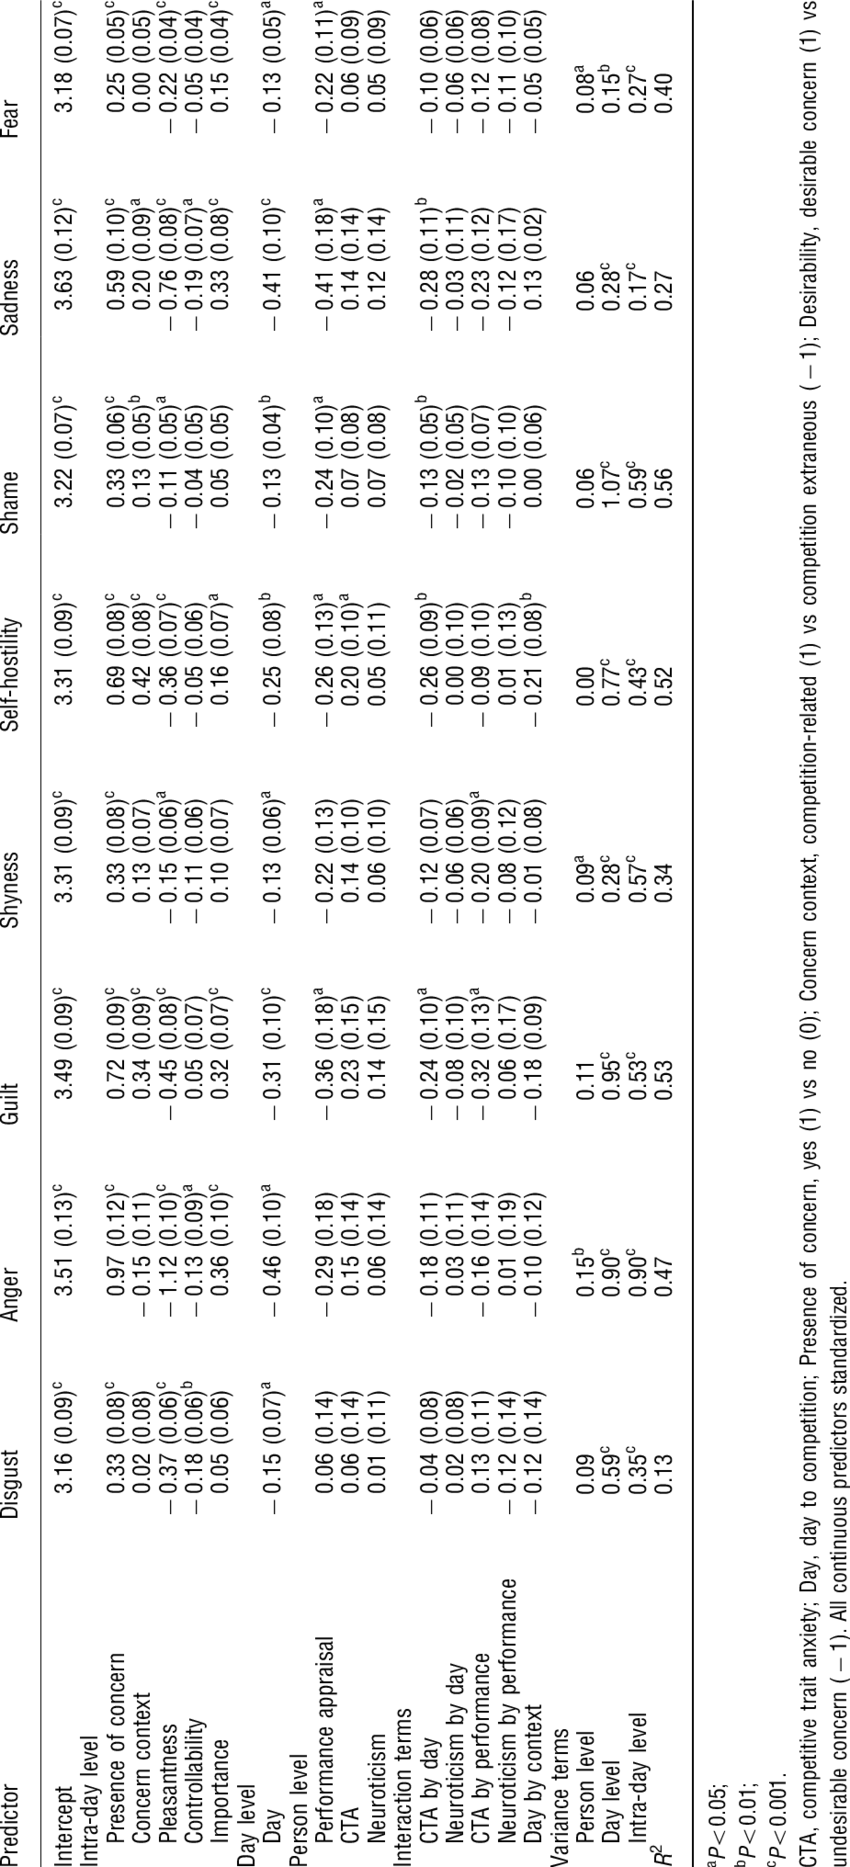 32 bracket png. Regression coefficients and their